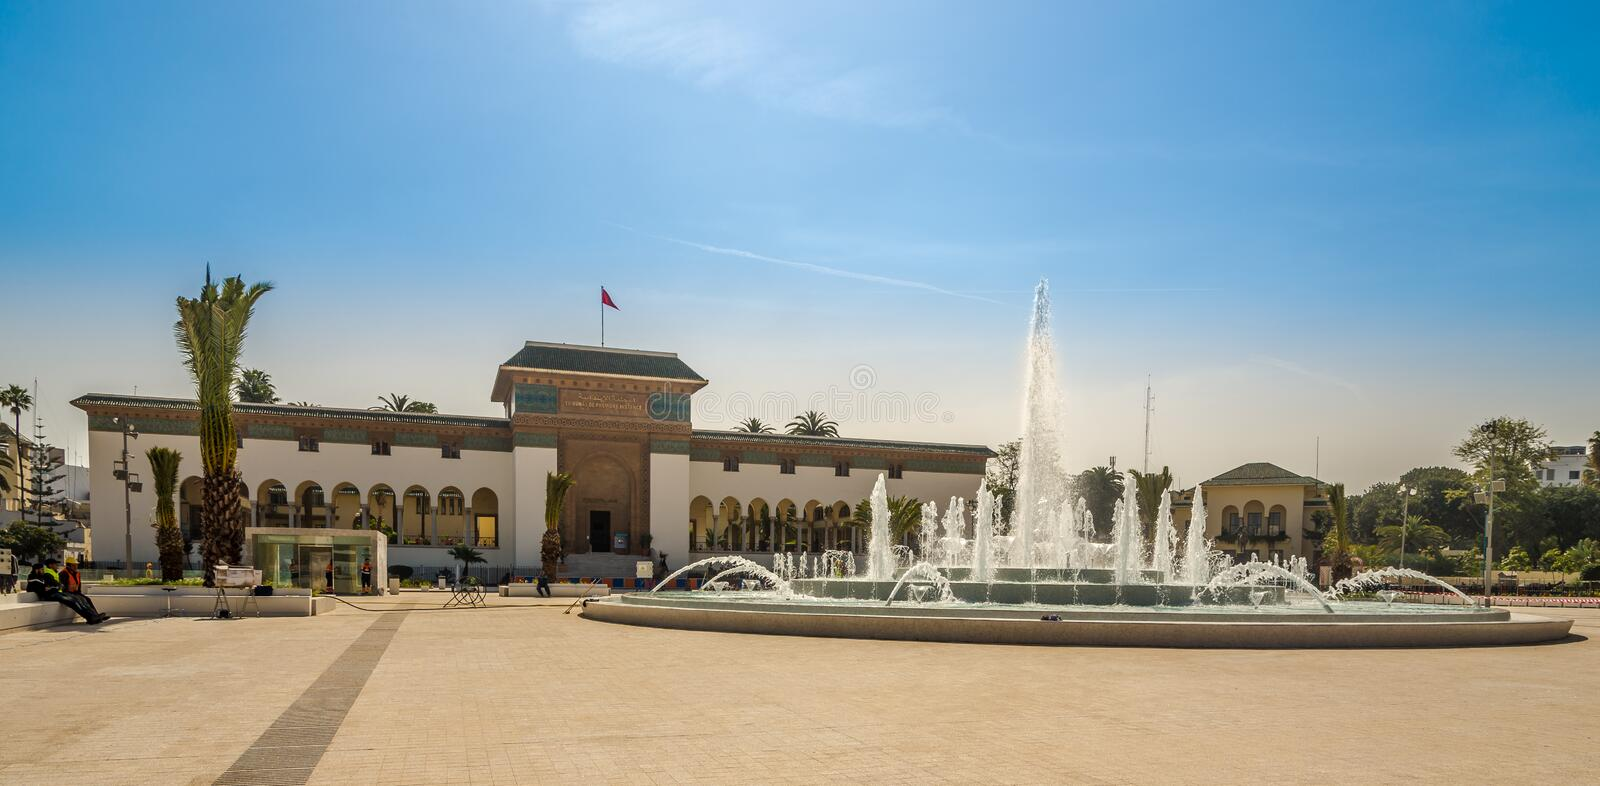 Building of Tribunal at the Mohamed square in Casablanca - Morocco stock images